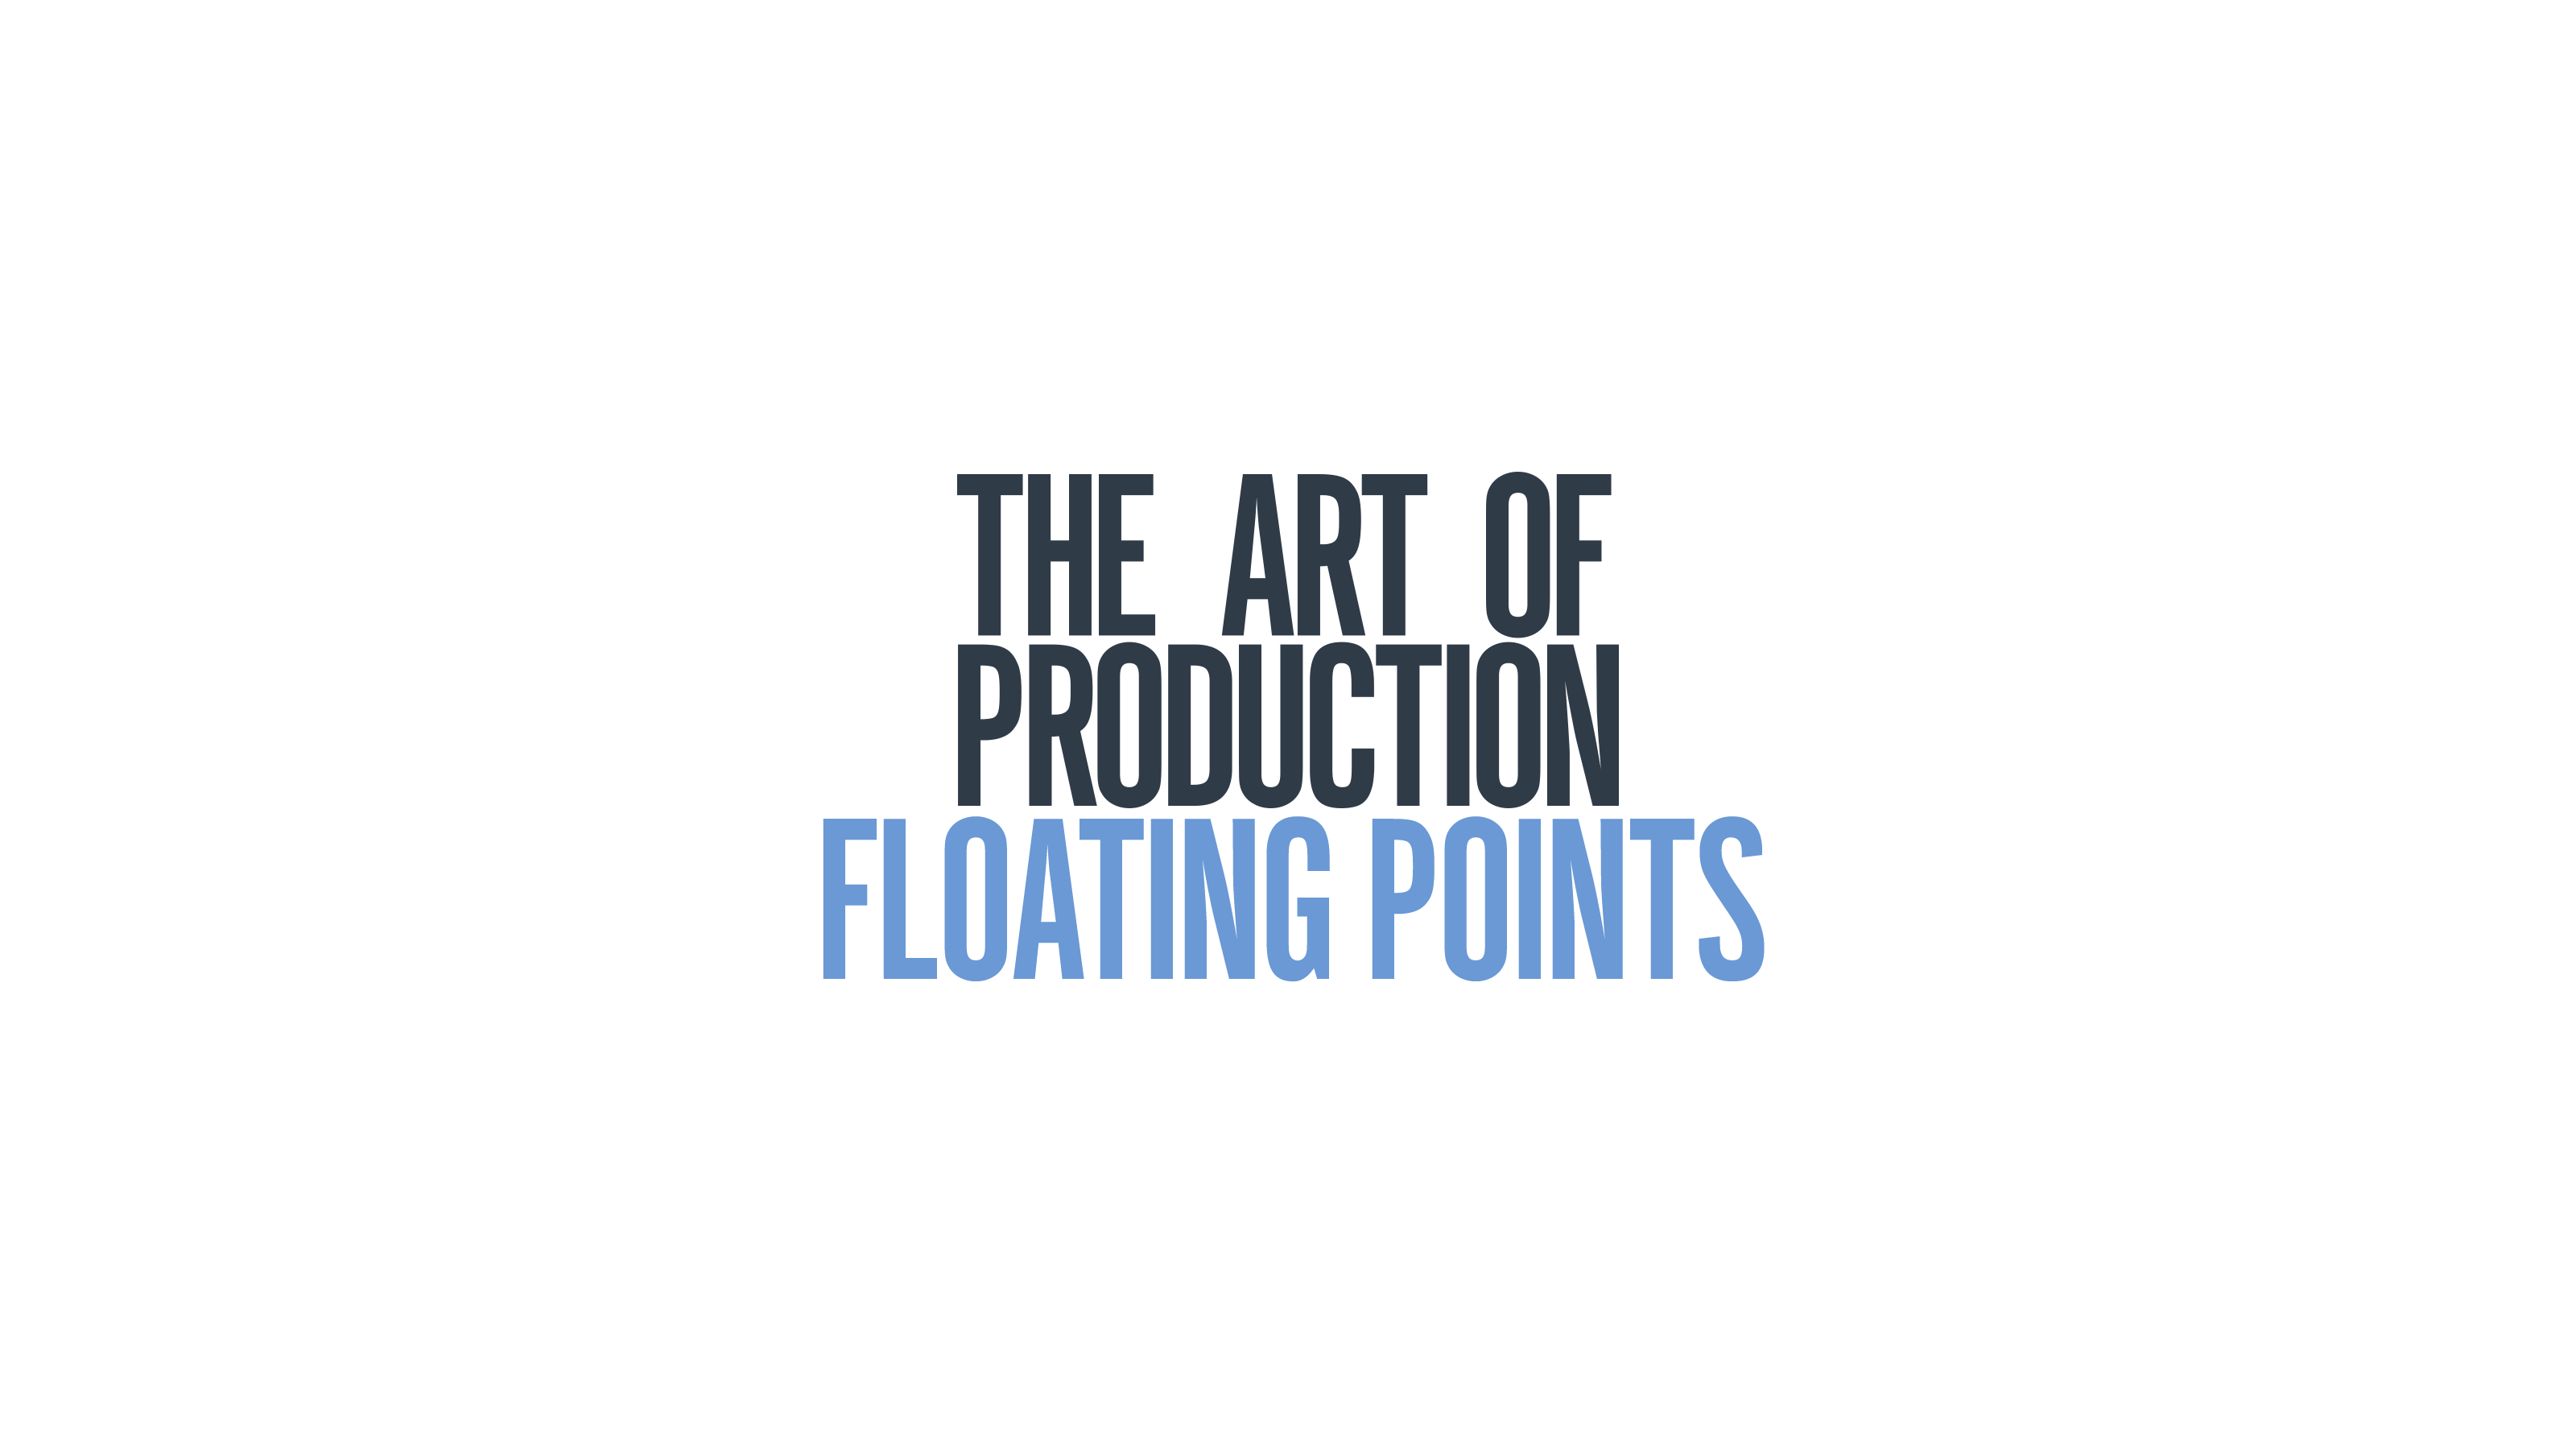 The Art Of Production: Floating Points